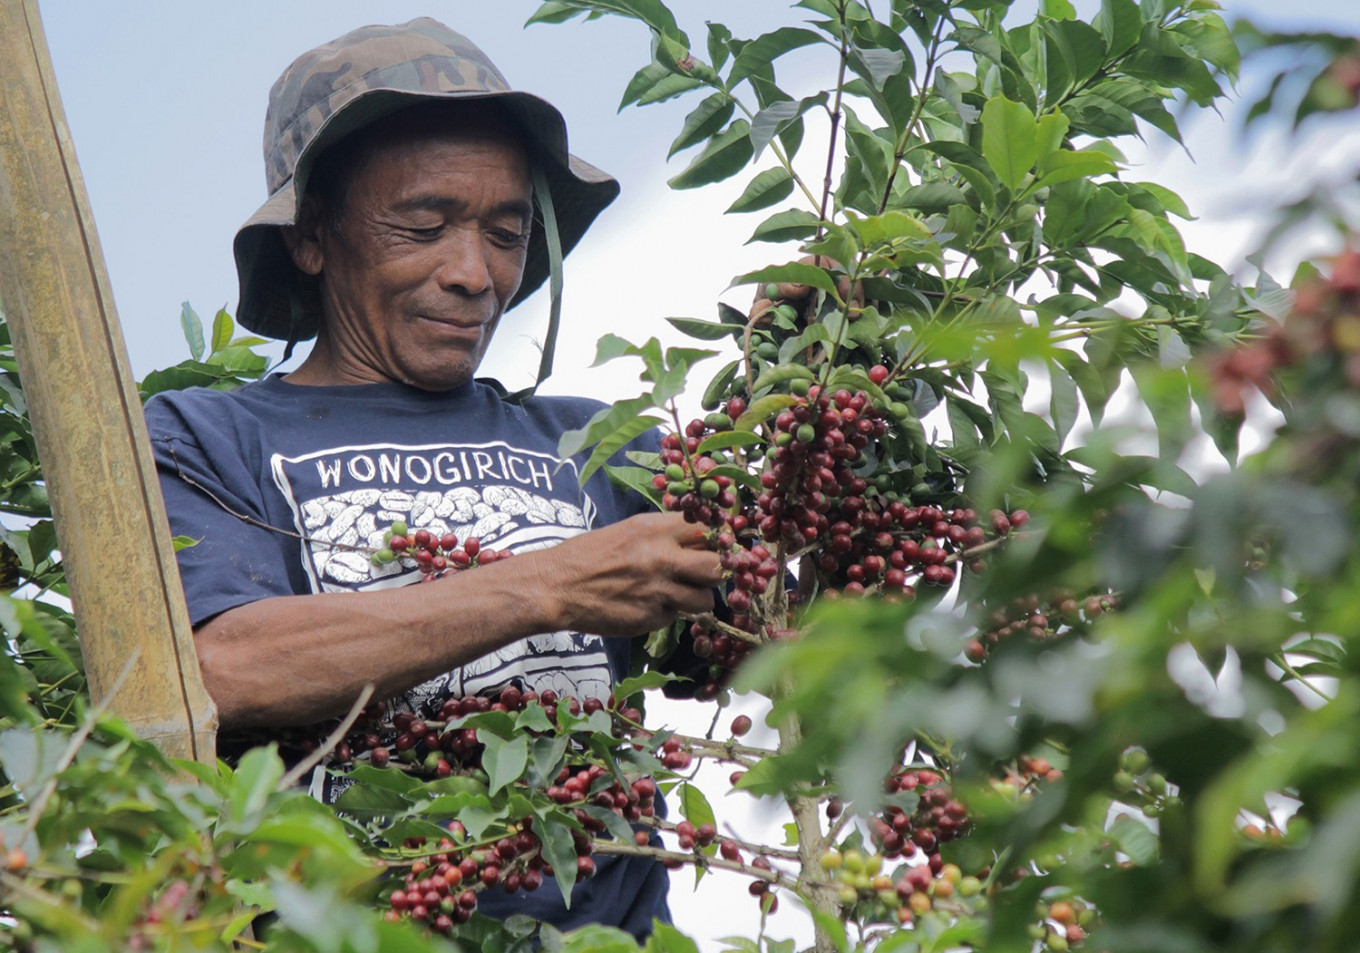 Coffee farmer Sular checks his coffee plants in Sumber Village, Bulukerto, Wonogiri, Central Java.